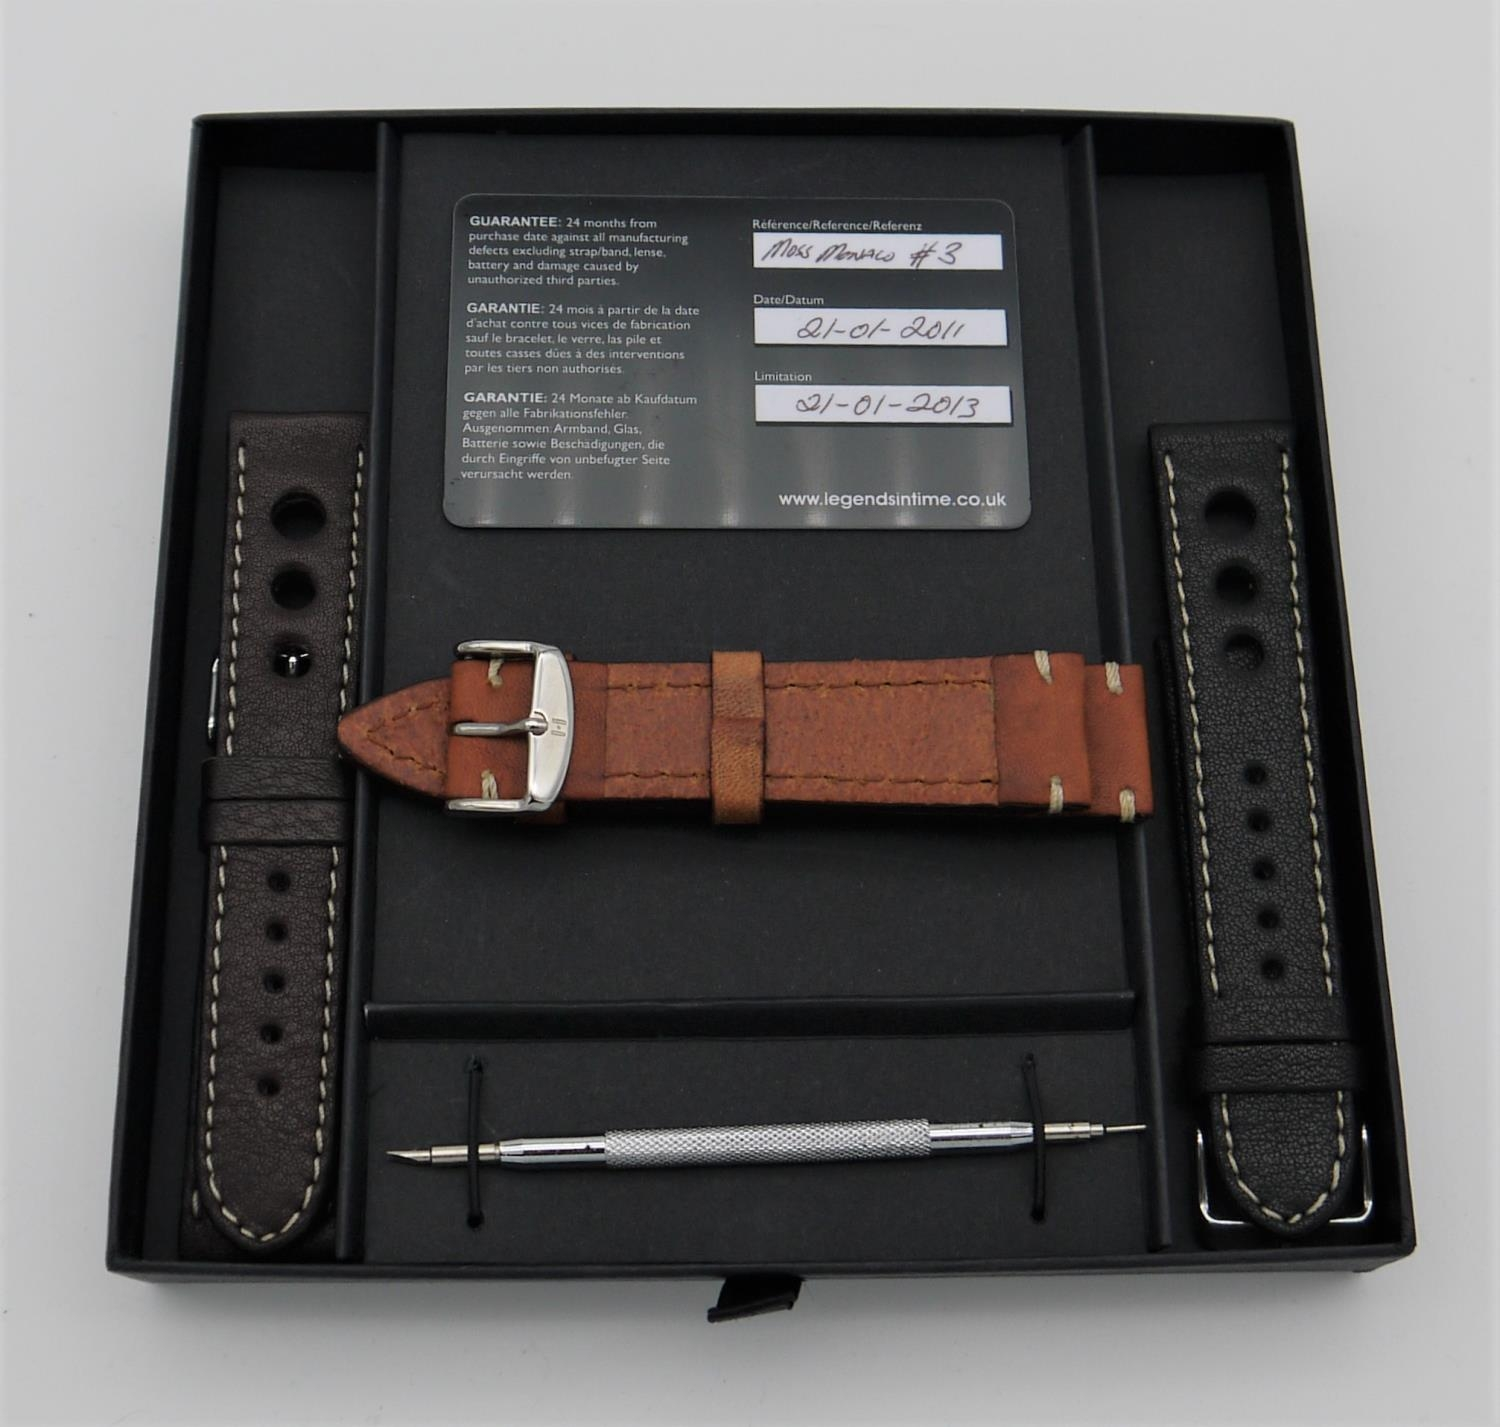 MOSS MONACO, 1961 WATCH - BY LEGENDS IN TIME, created to celebrate Stirling Moss winning the - Image 2 of 3